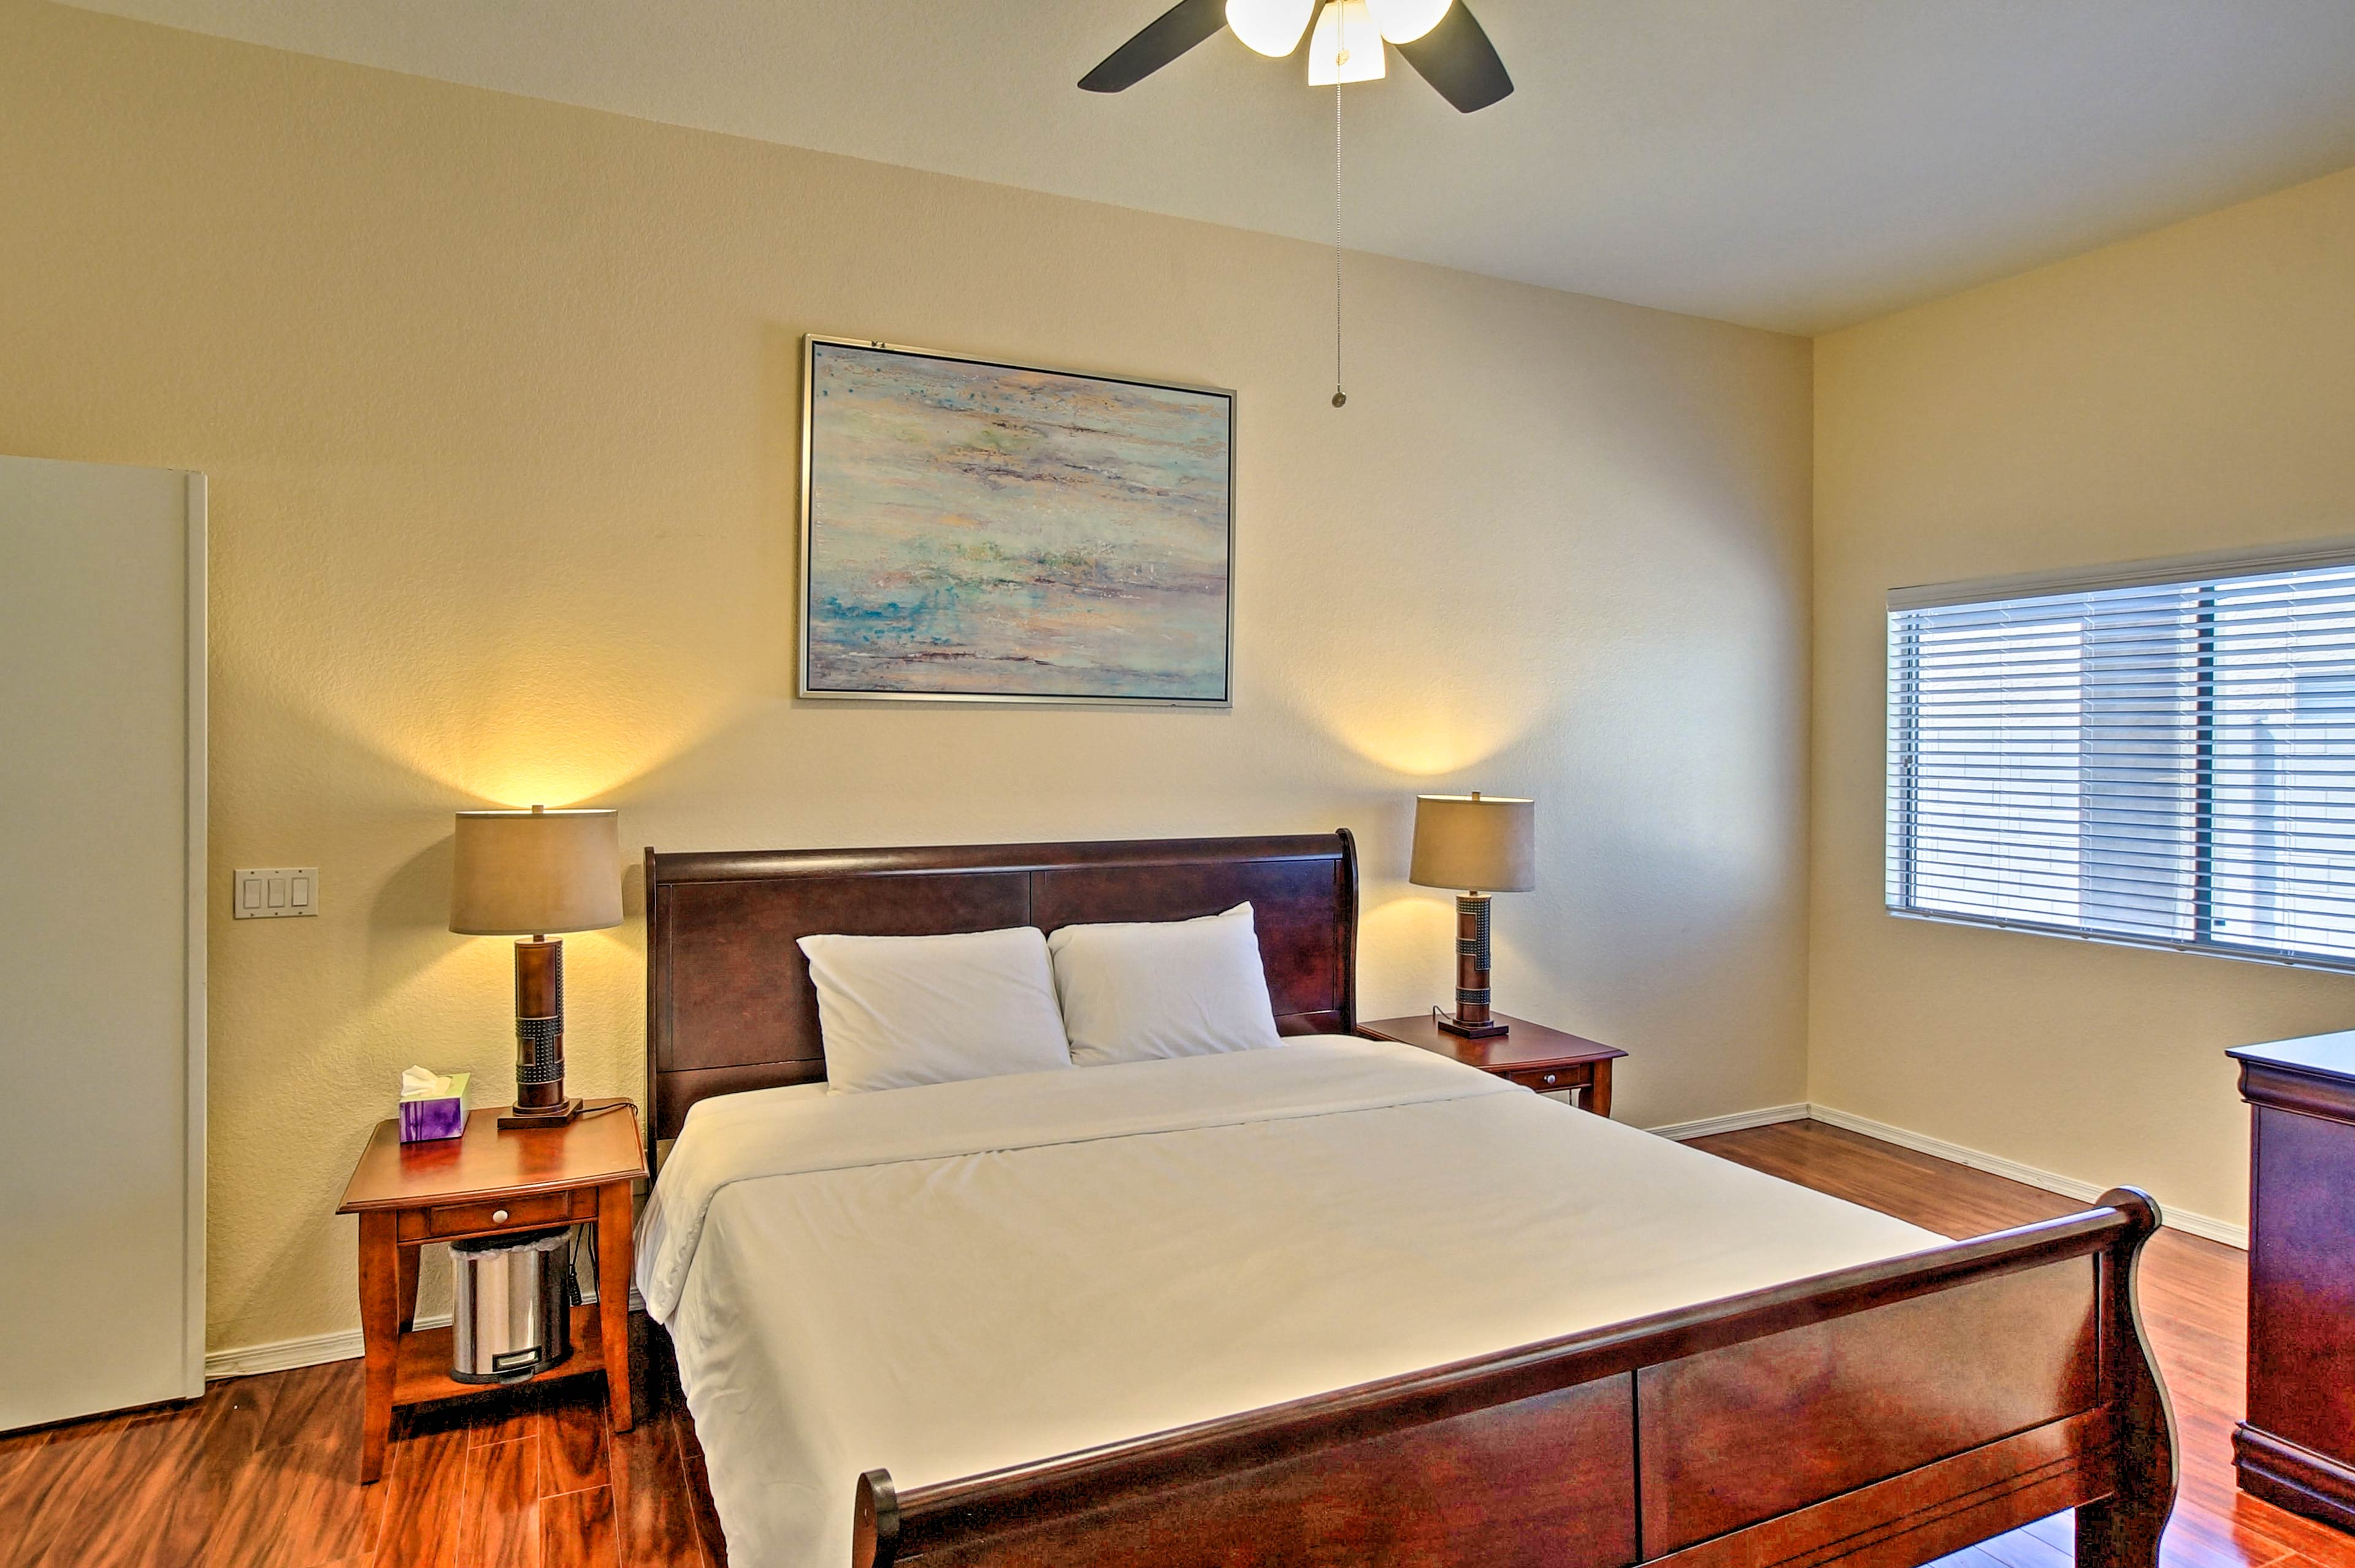 The master bedroom boasts a cozy king-sized bed.